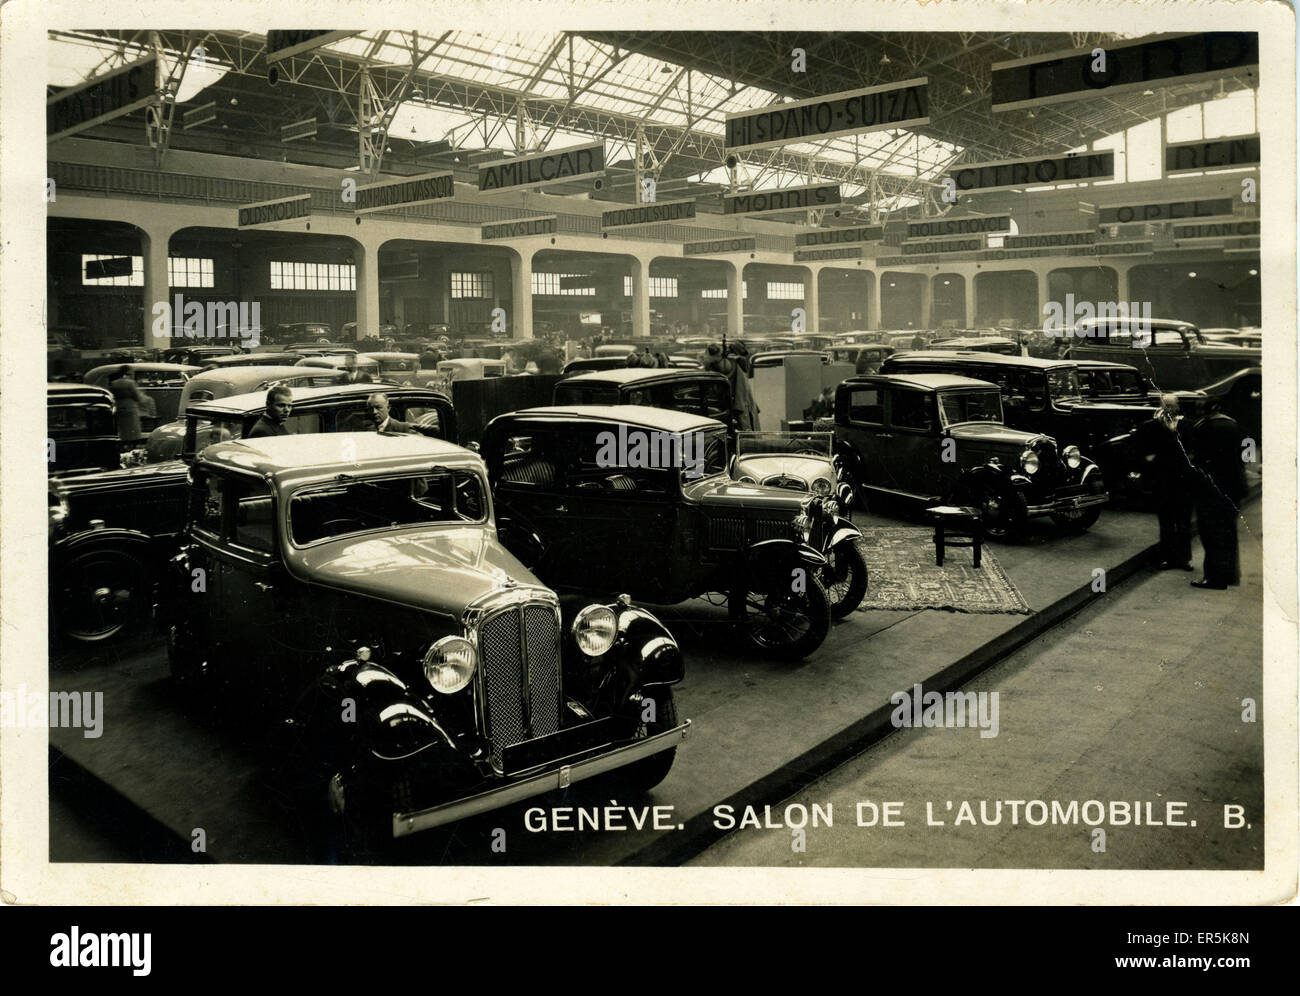 Vintage Cars Stock Photos & Vintage Cars Stock Images - Alamy